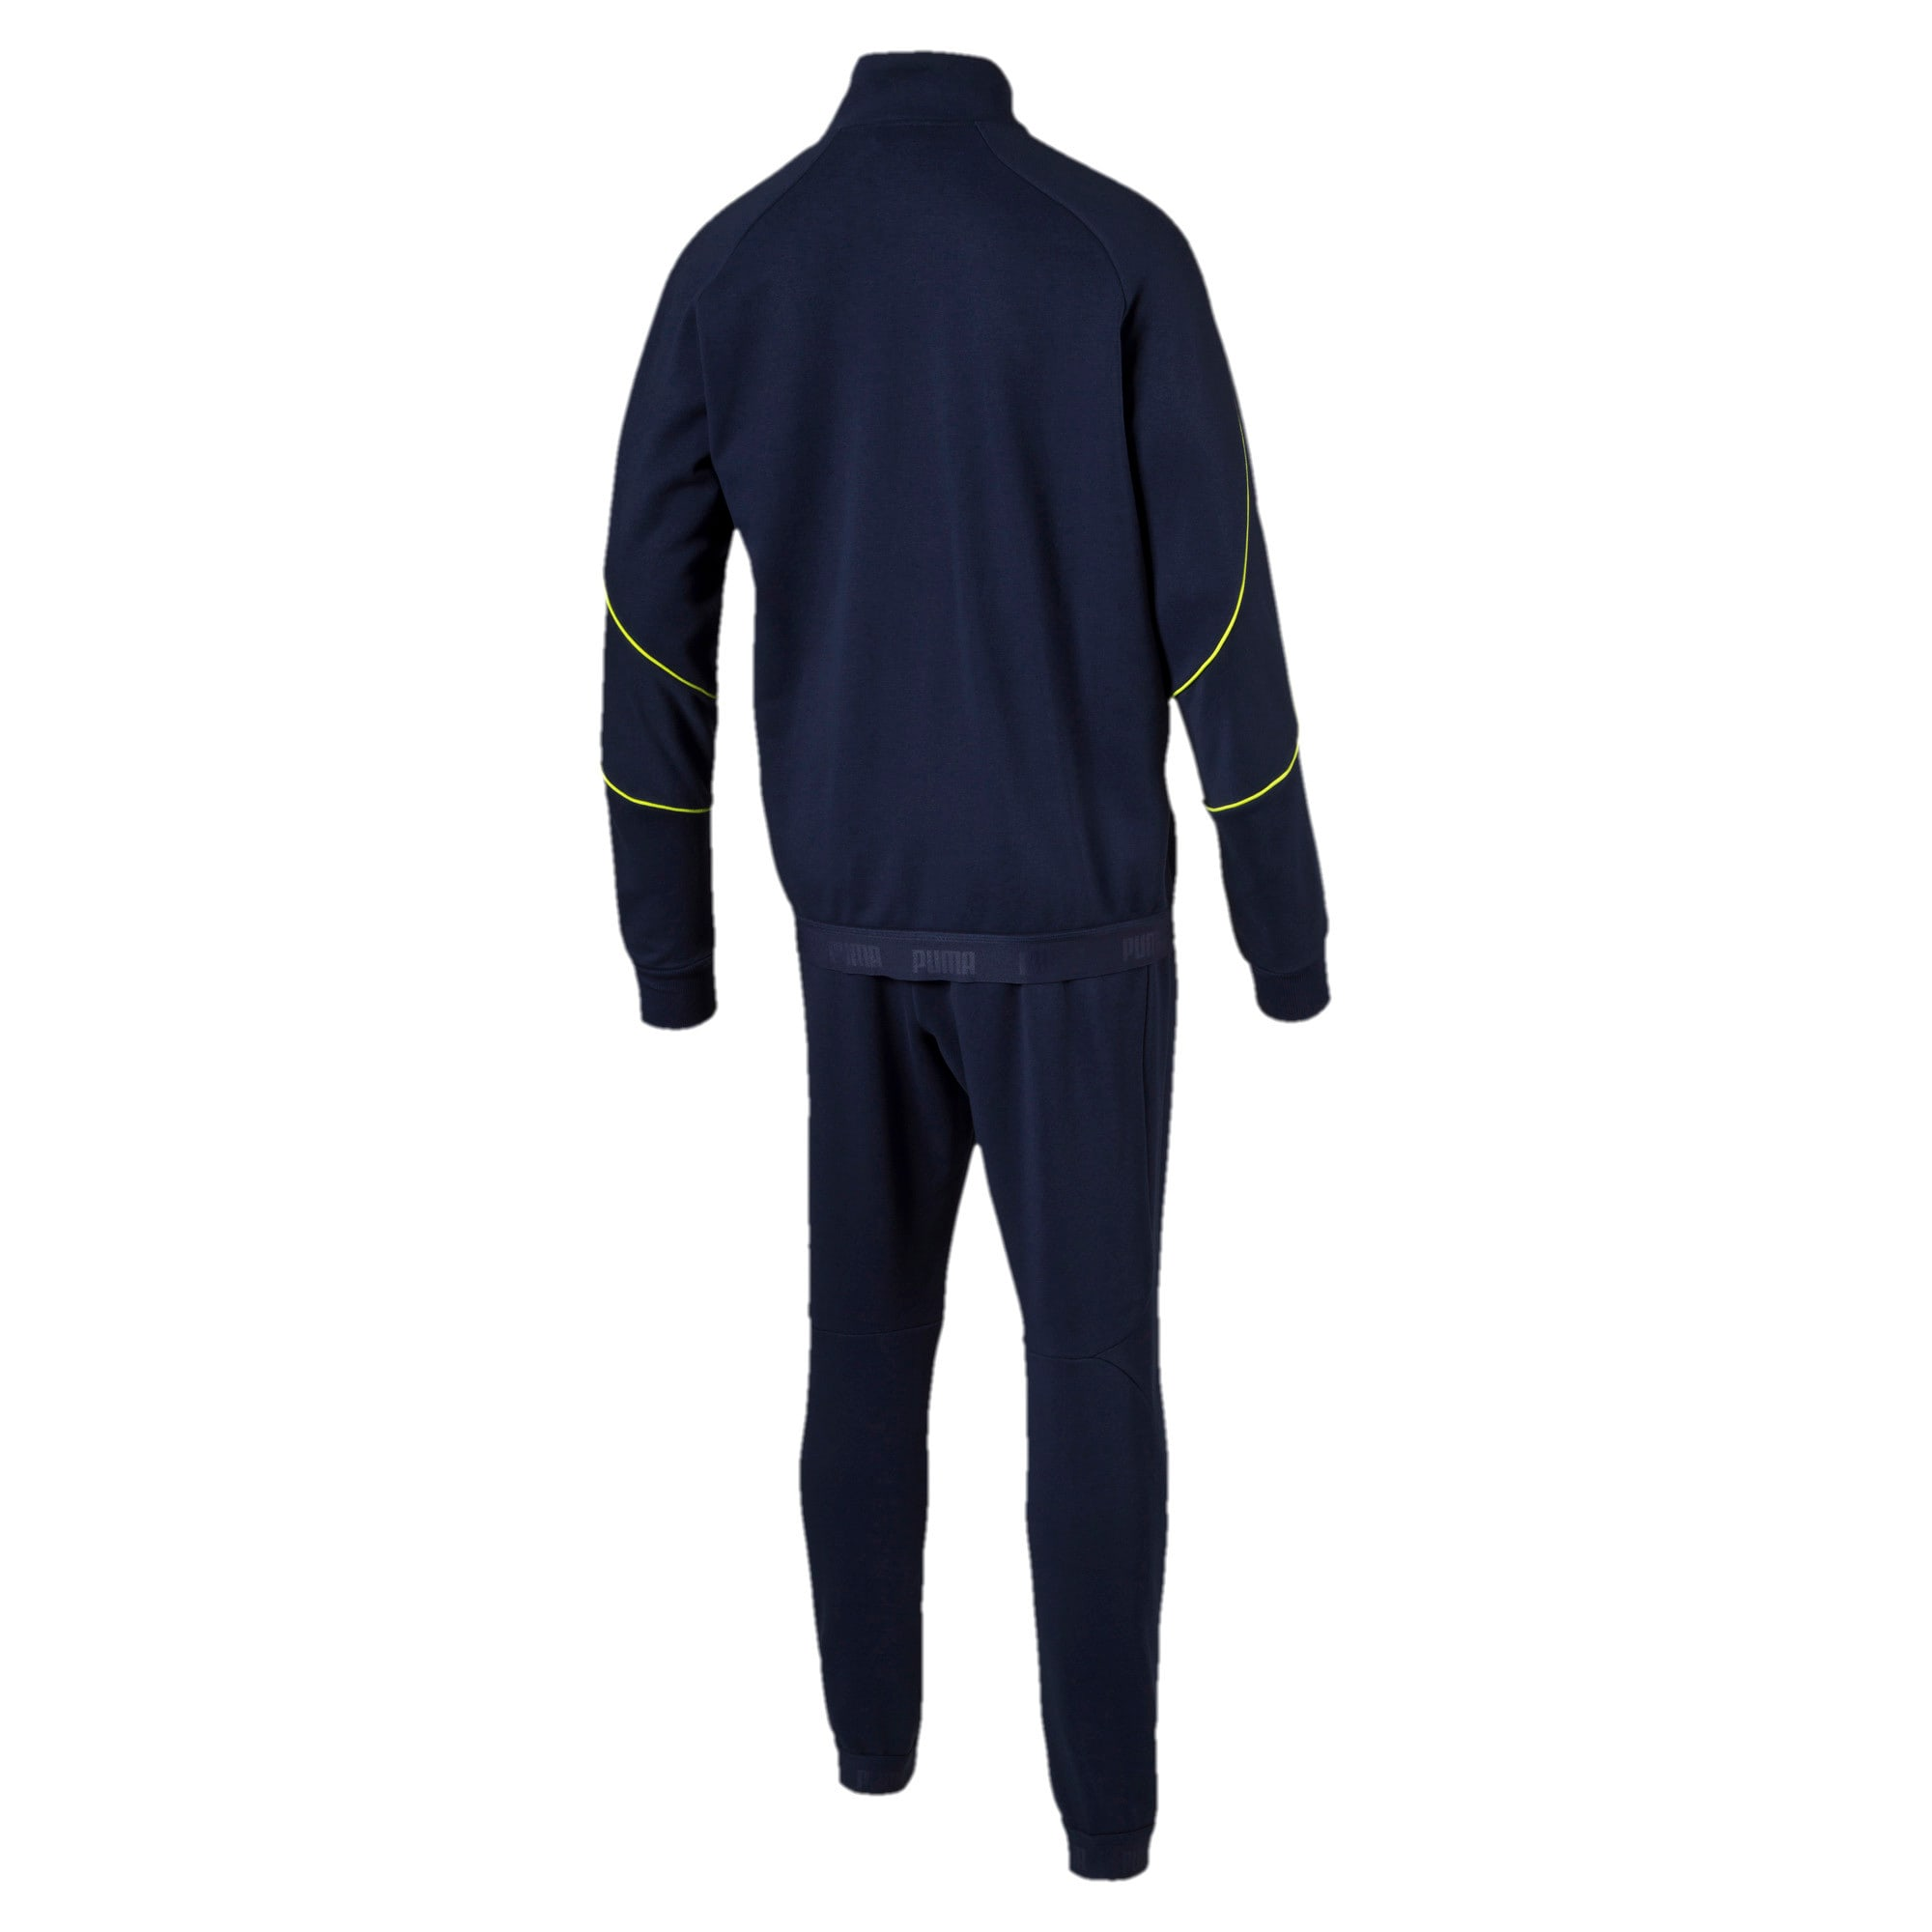 Thumbnail 2 of STYLE Stretch Suit, Peacoat, medium-IND